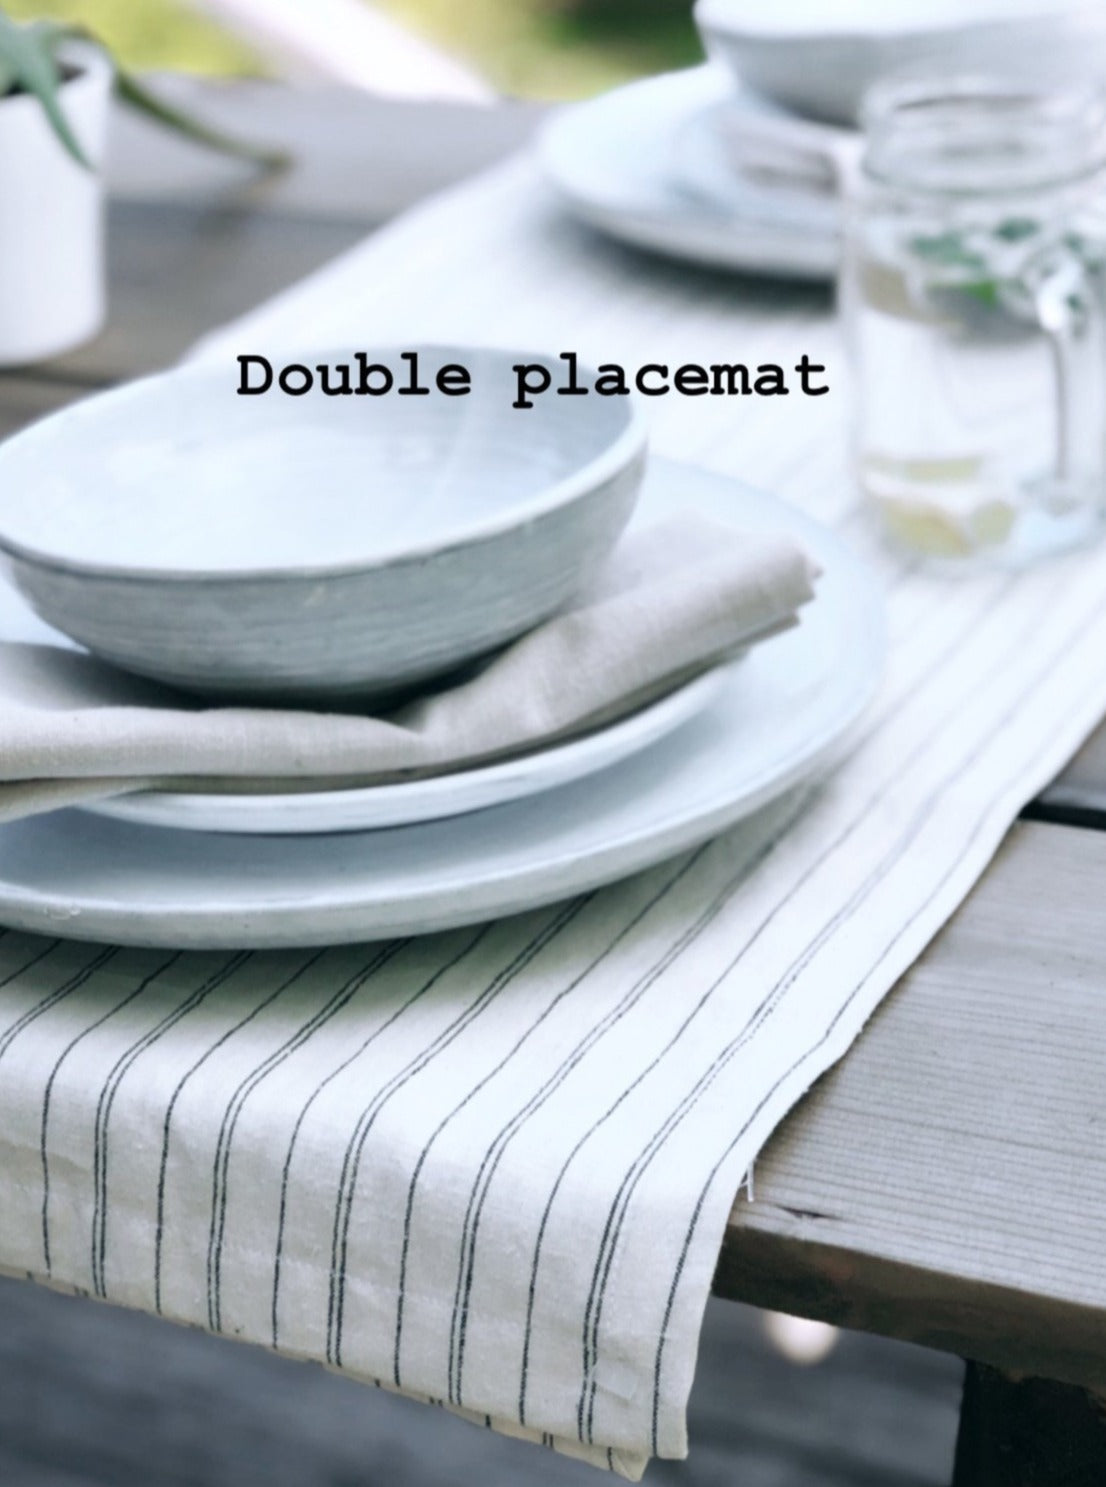 Handmade from super-soft runner or double placemat and hand Towels Creme